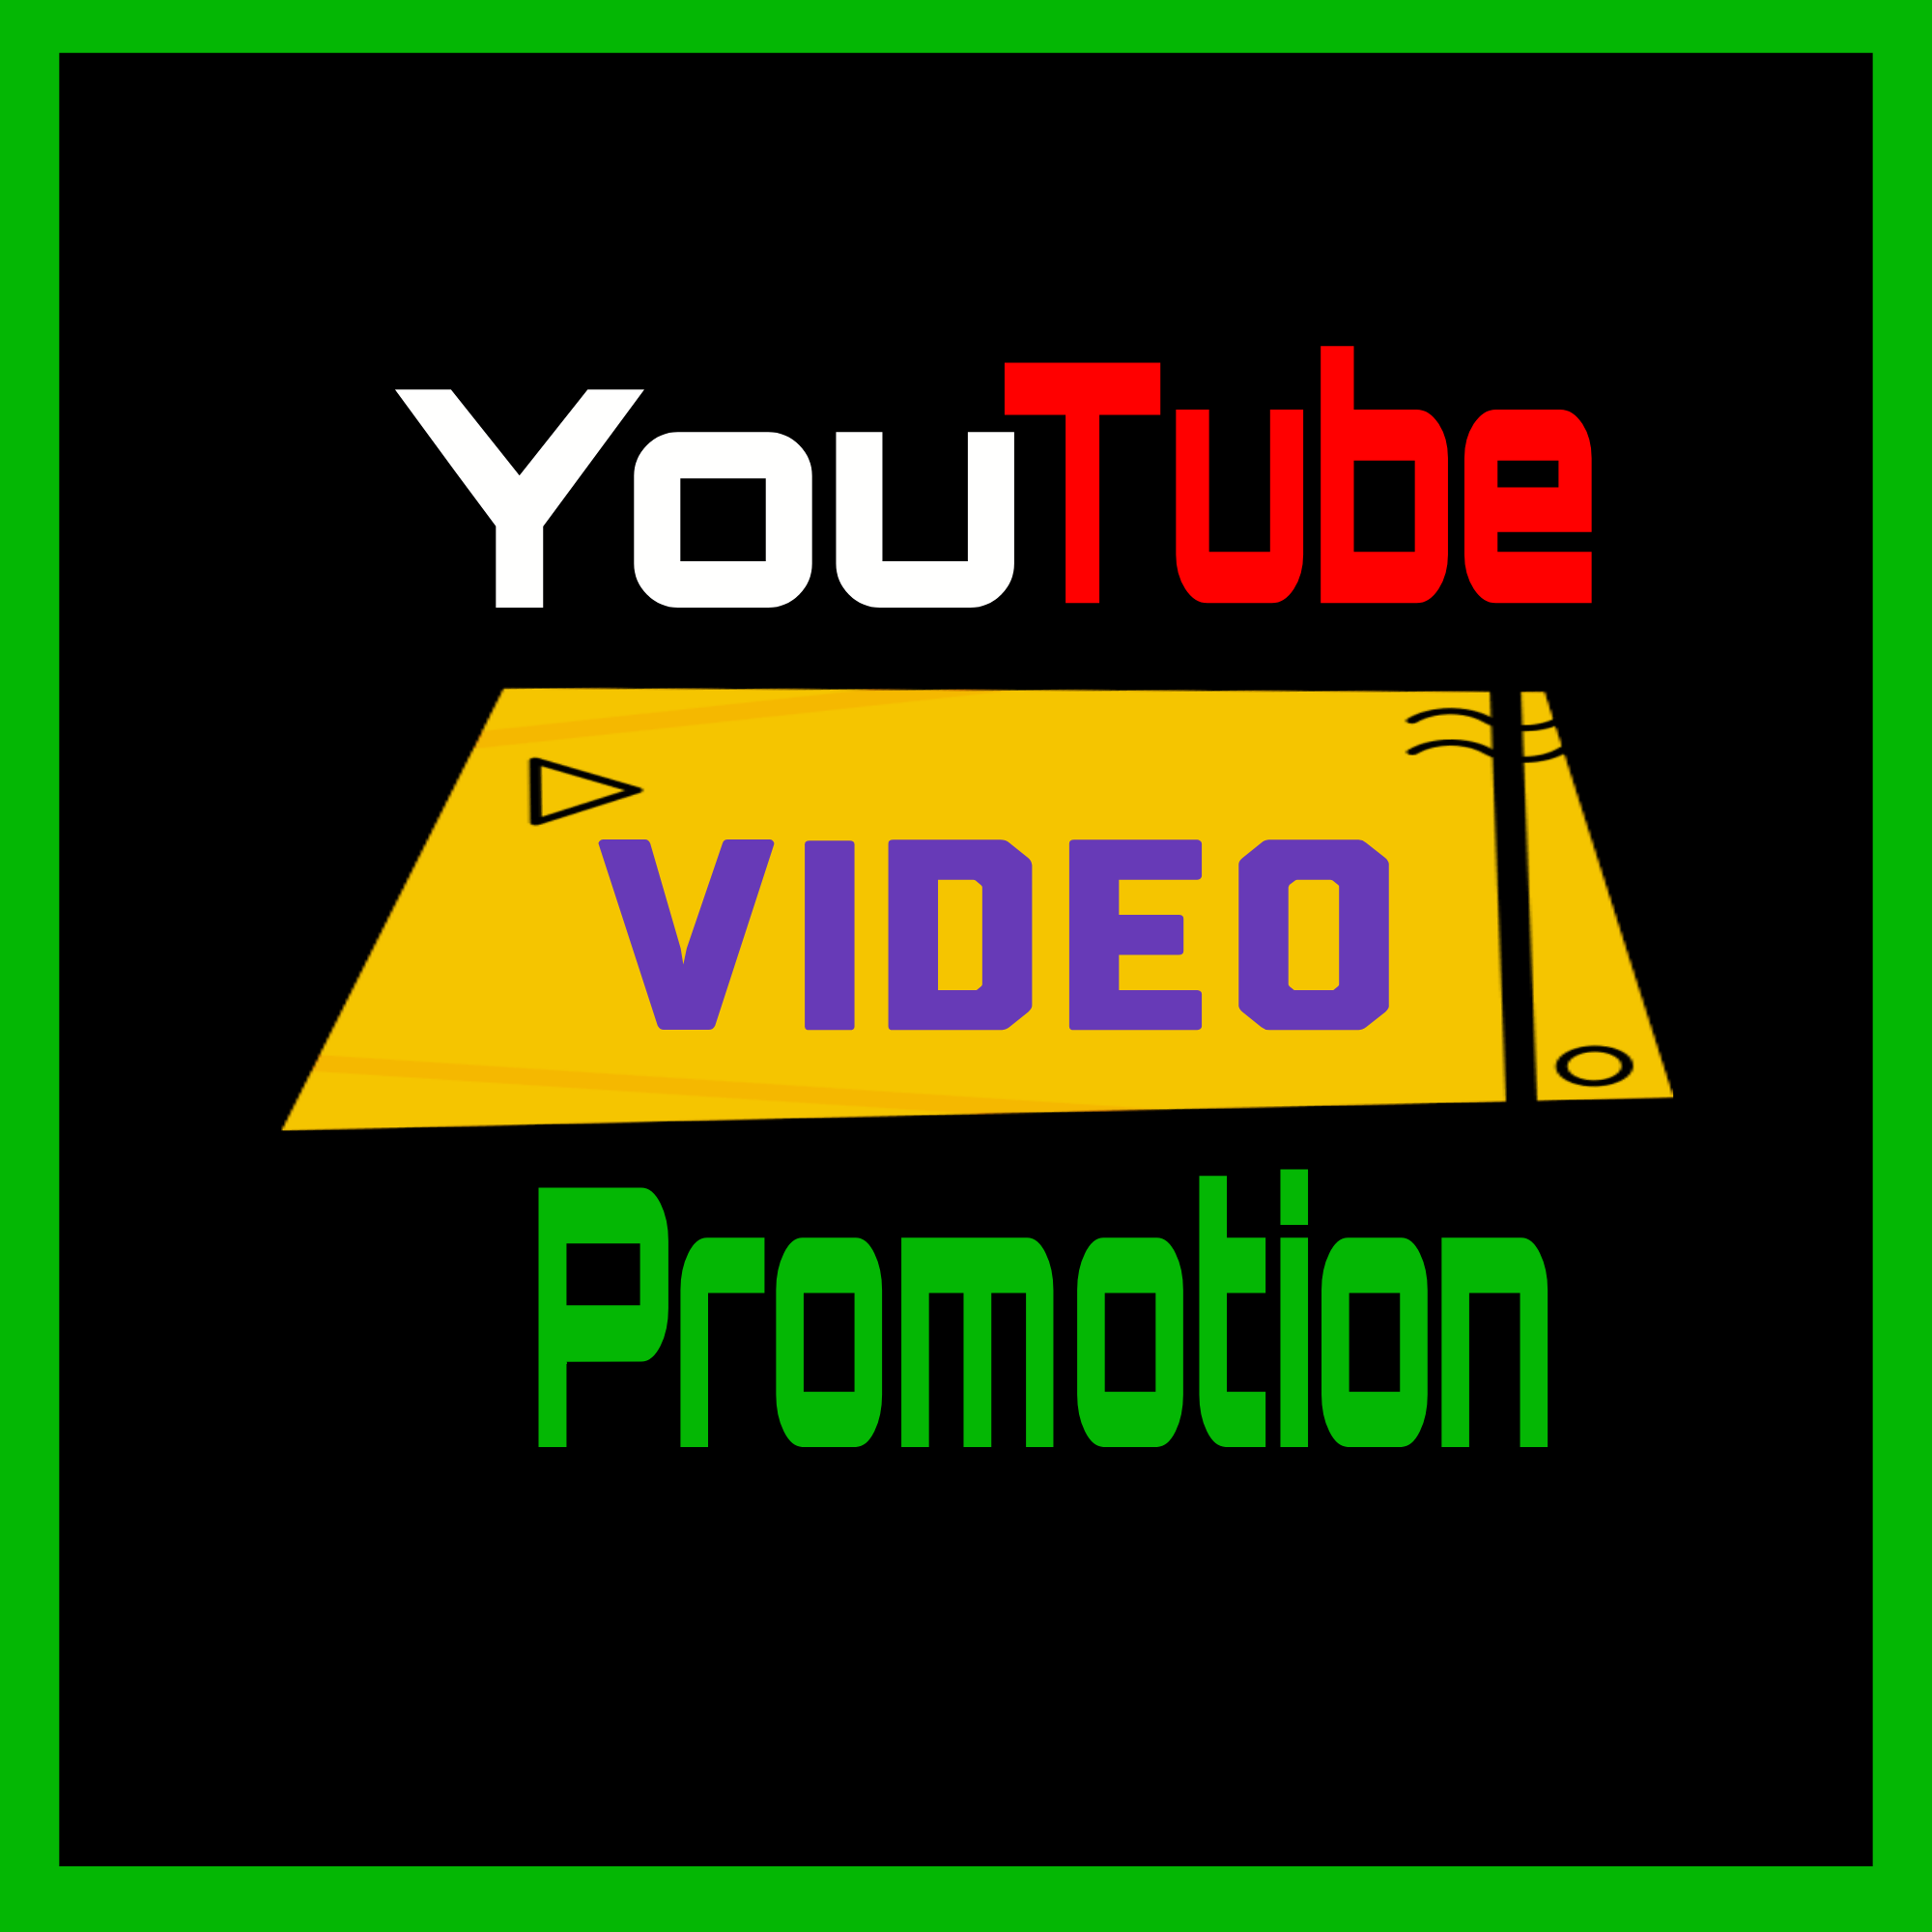 YouTube Video Promotion Social Media Marketing Fast Delivery